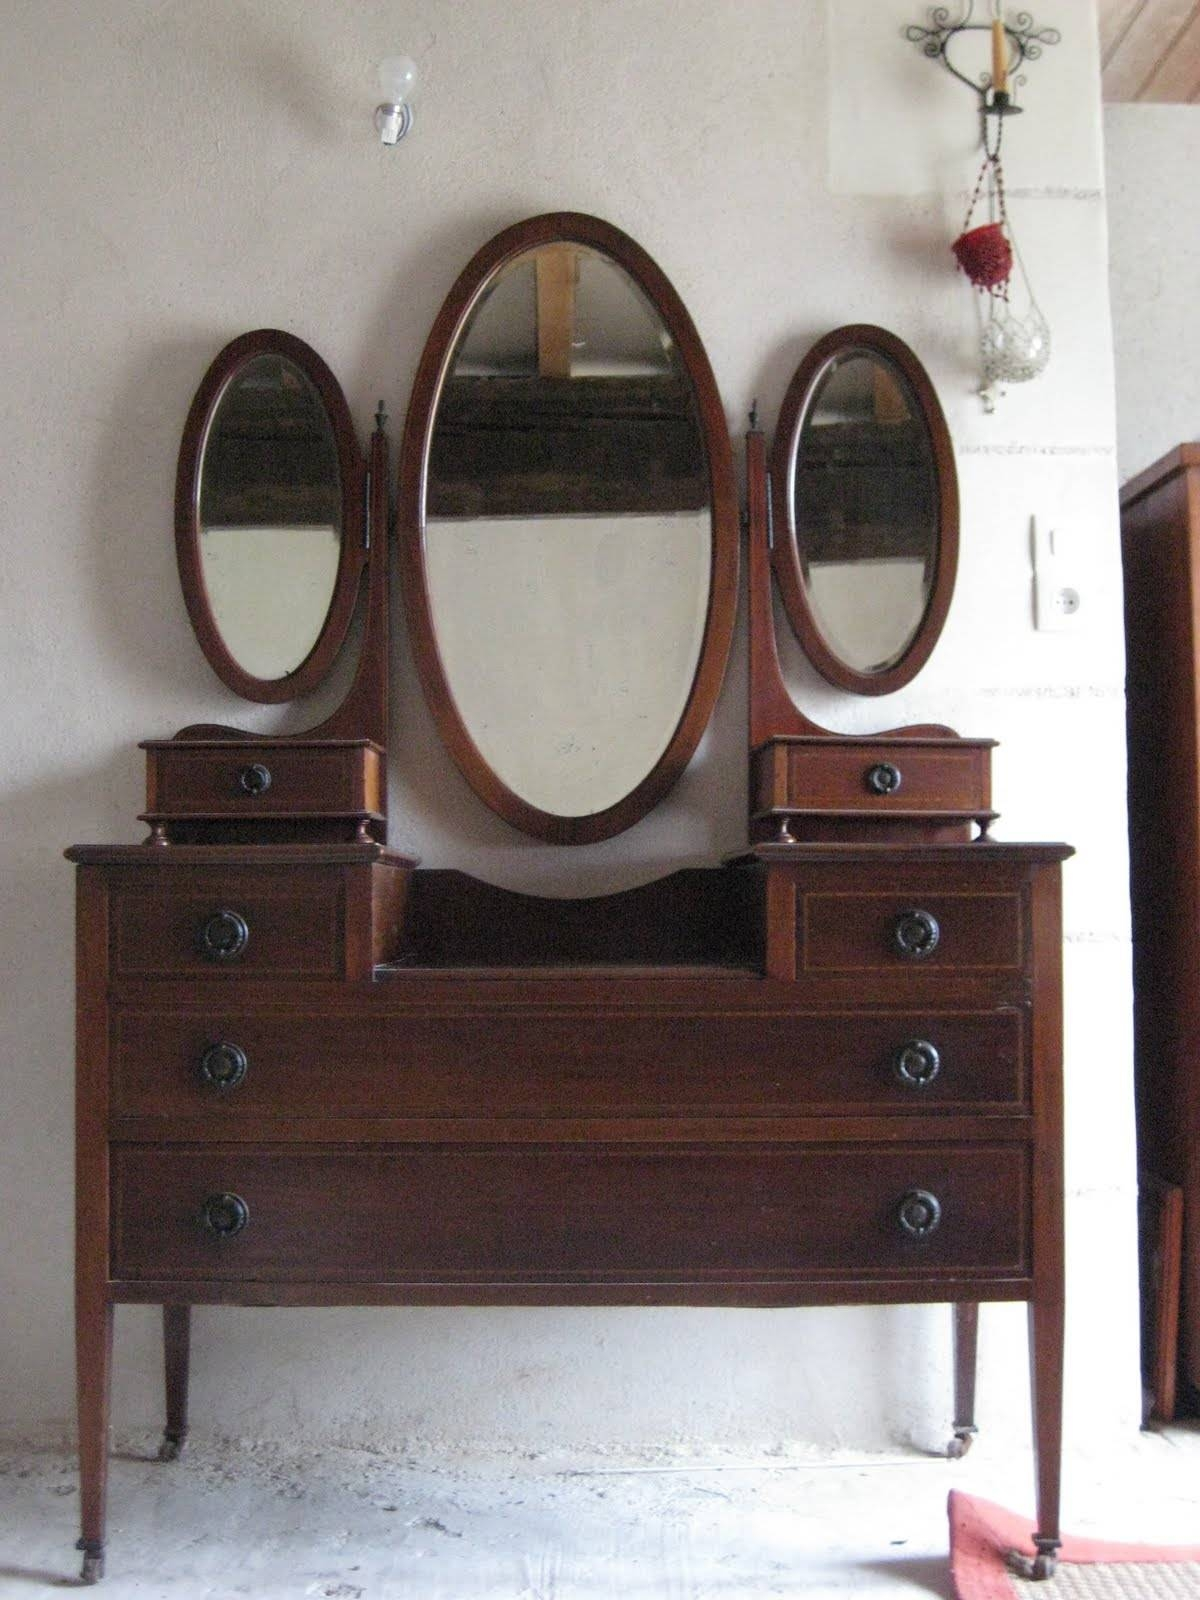 Bedroom Dressing Table Designs With Full Length Mirror For Girls within Full Length Antique Dressing Mirrors (Image 6 of 15)